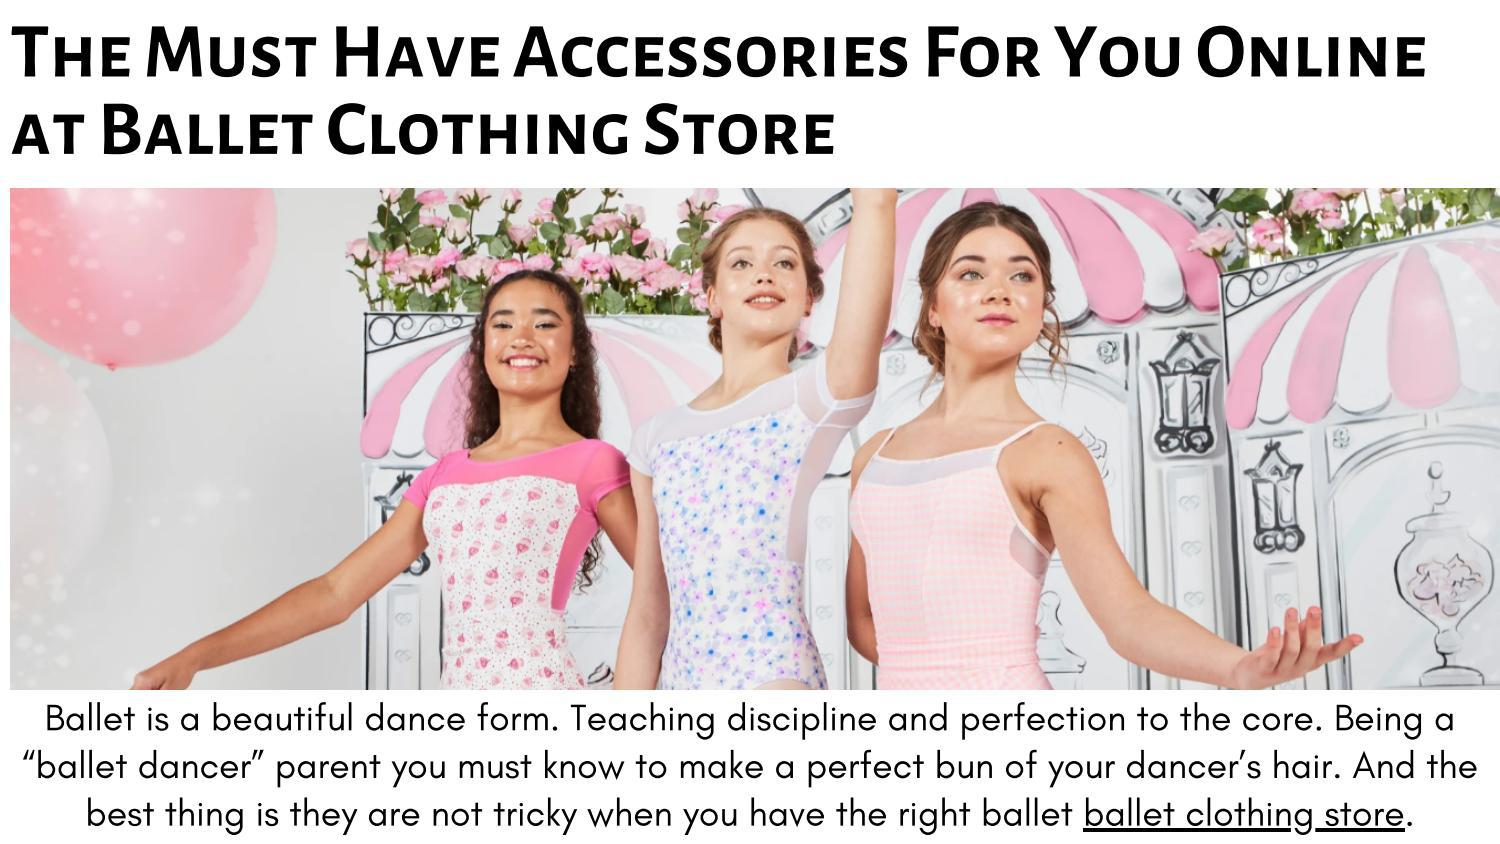 The Must Have Accessories For You Online at Ballet Clothing Store